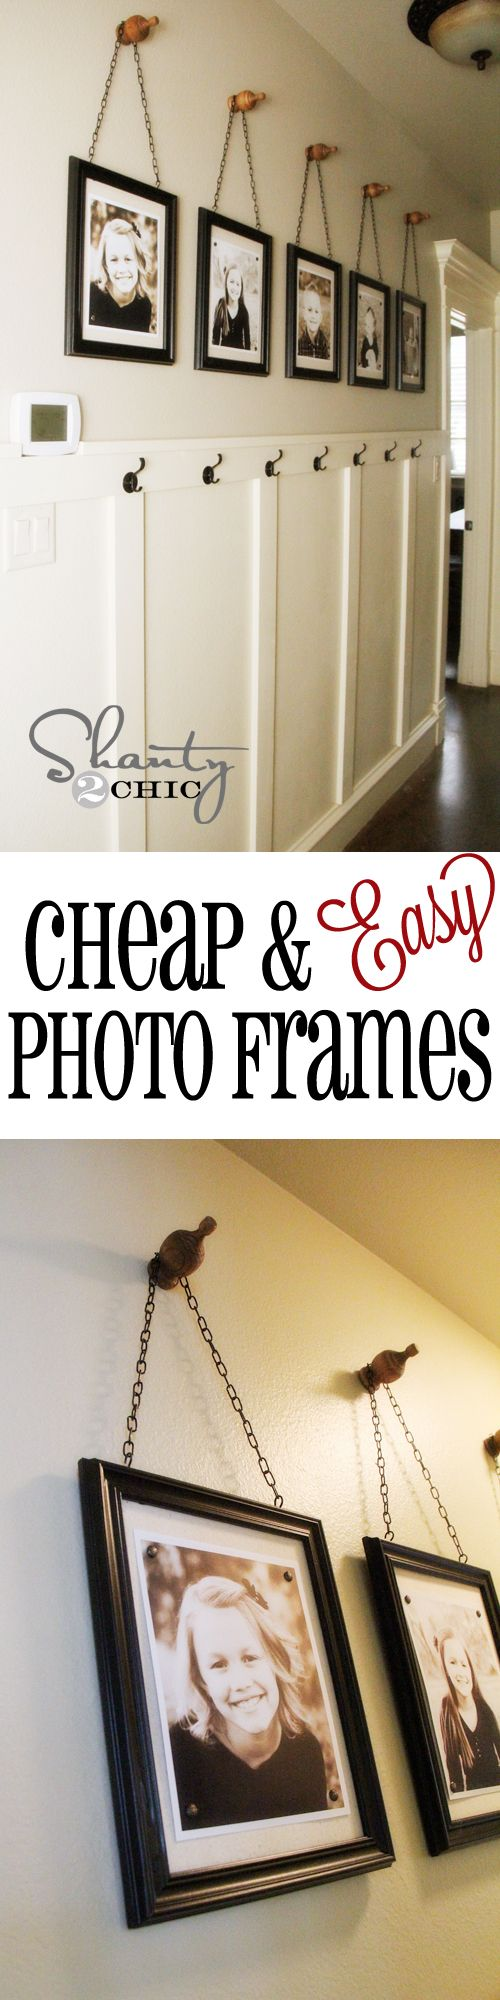 1000 images about unique framing ideas on pinterest shelves custom framing and hallways